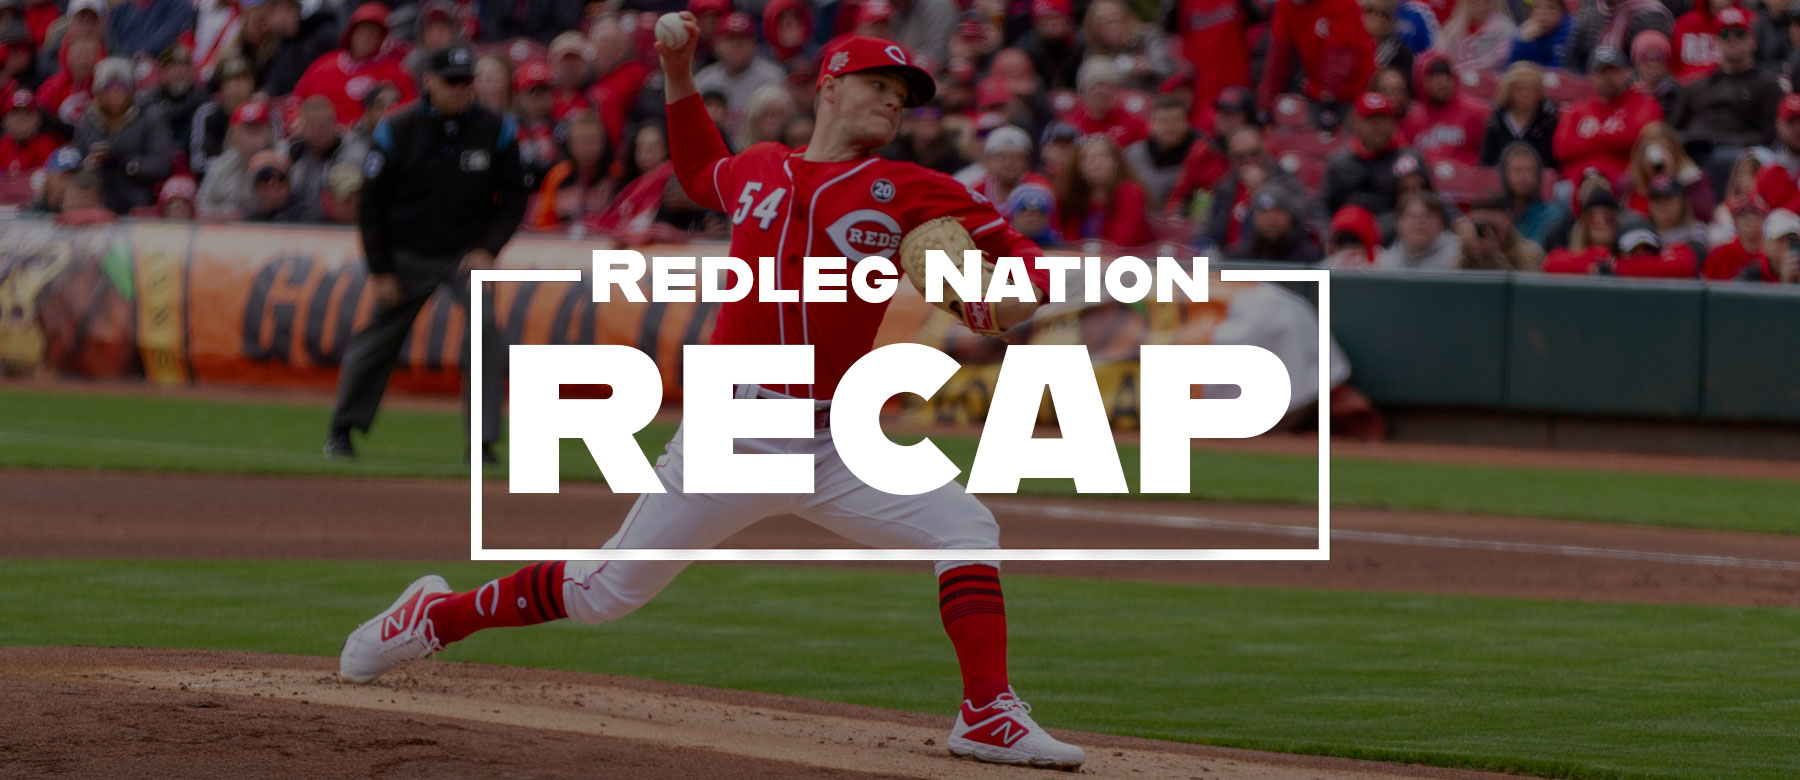 RN Recap: Gray dazzles as Reds 3-run first inning holds up